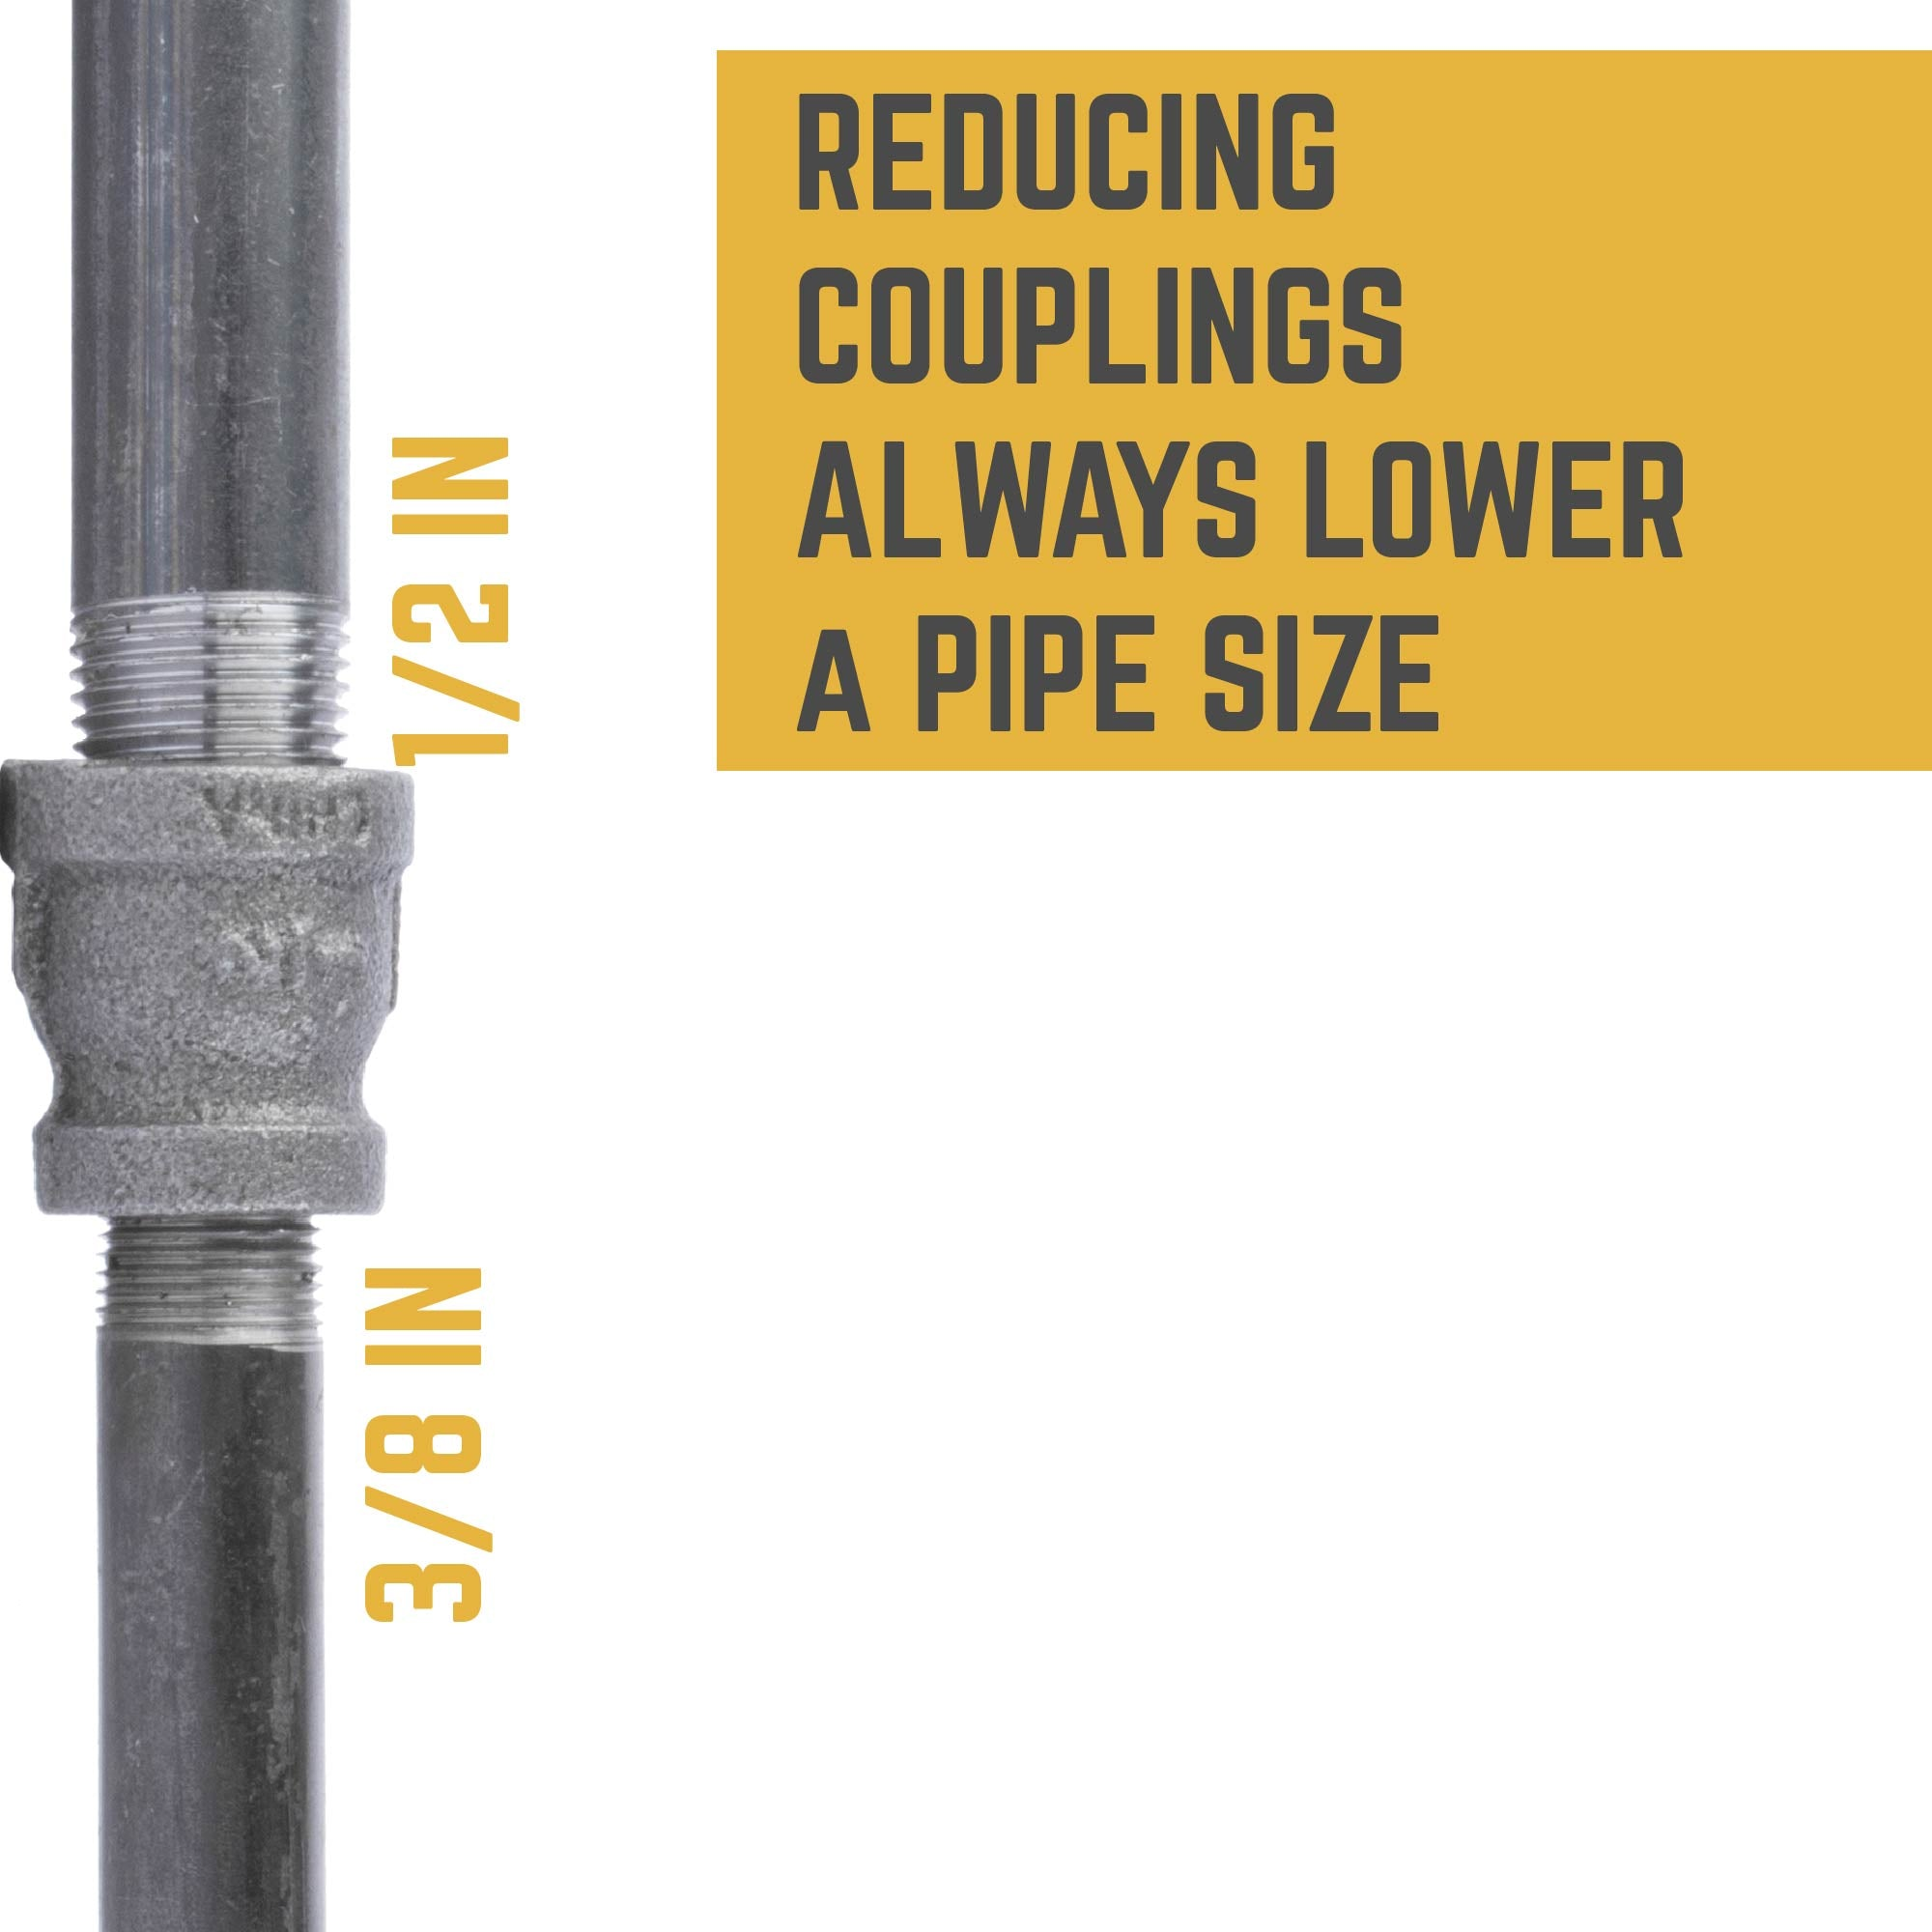 1/2 IN X 3/8 IN REDUCING COUPLING